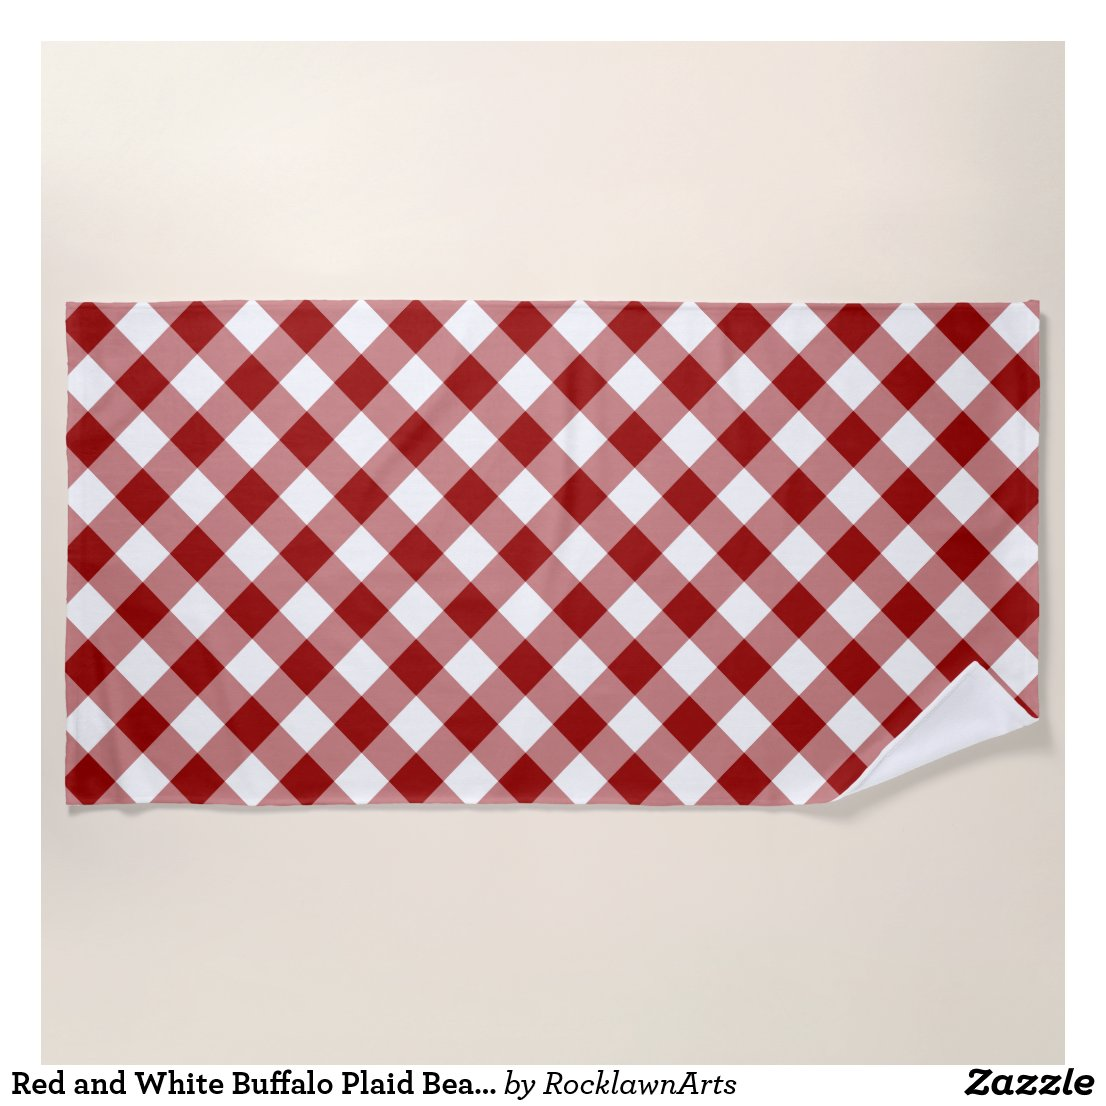 Red and White Buffalo Plaid Beach Towel